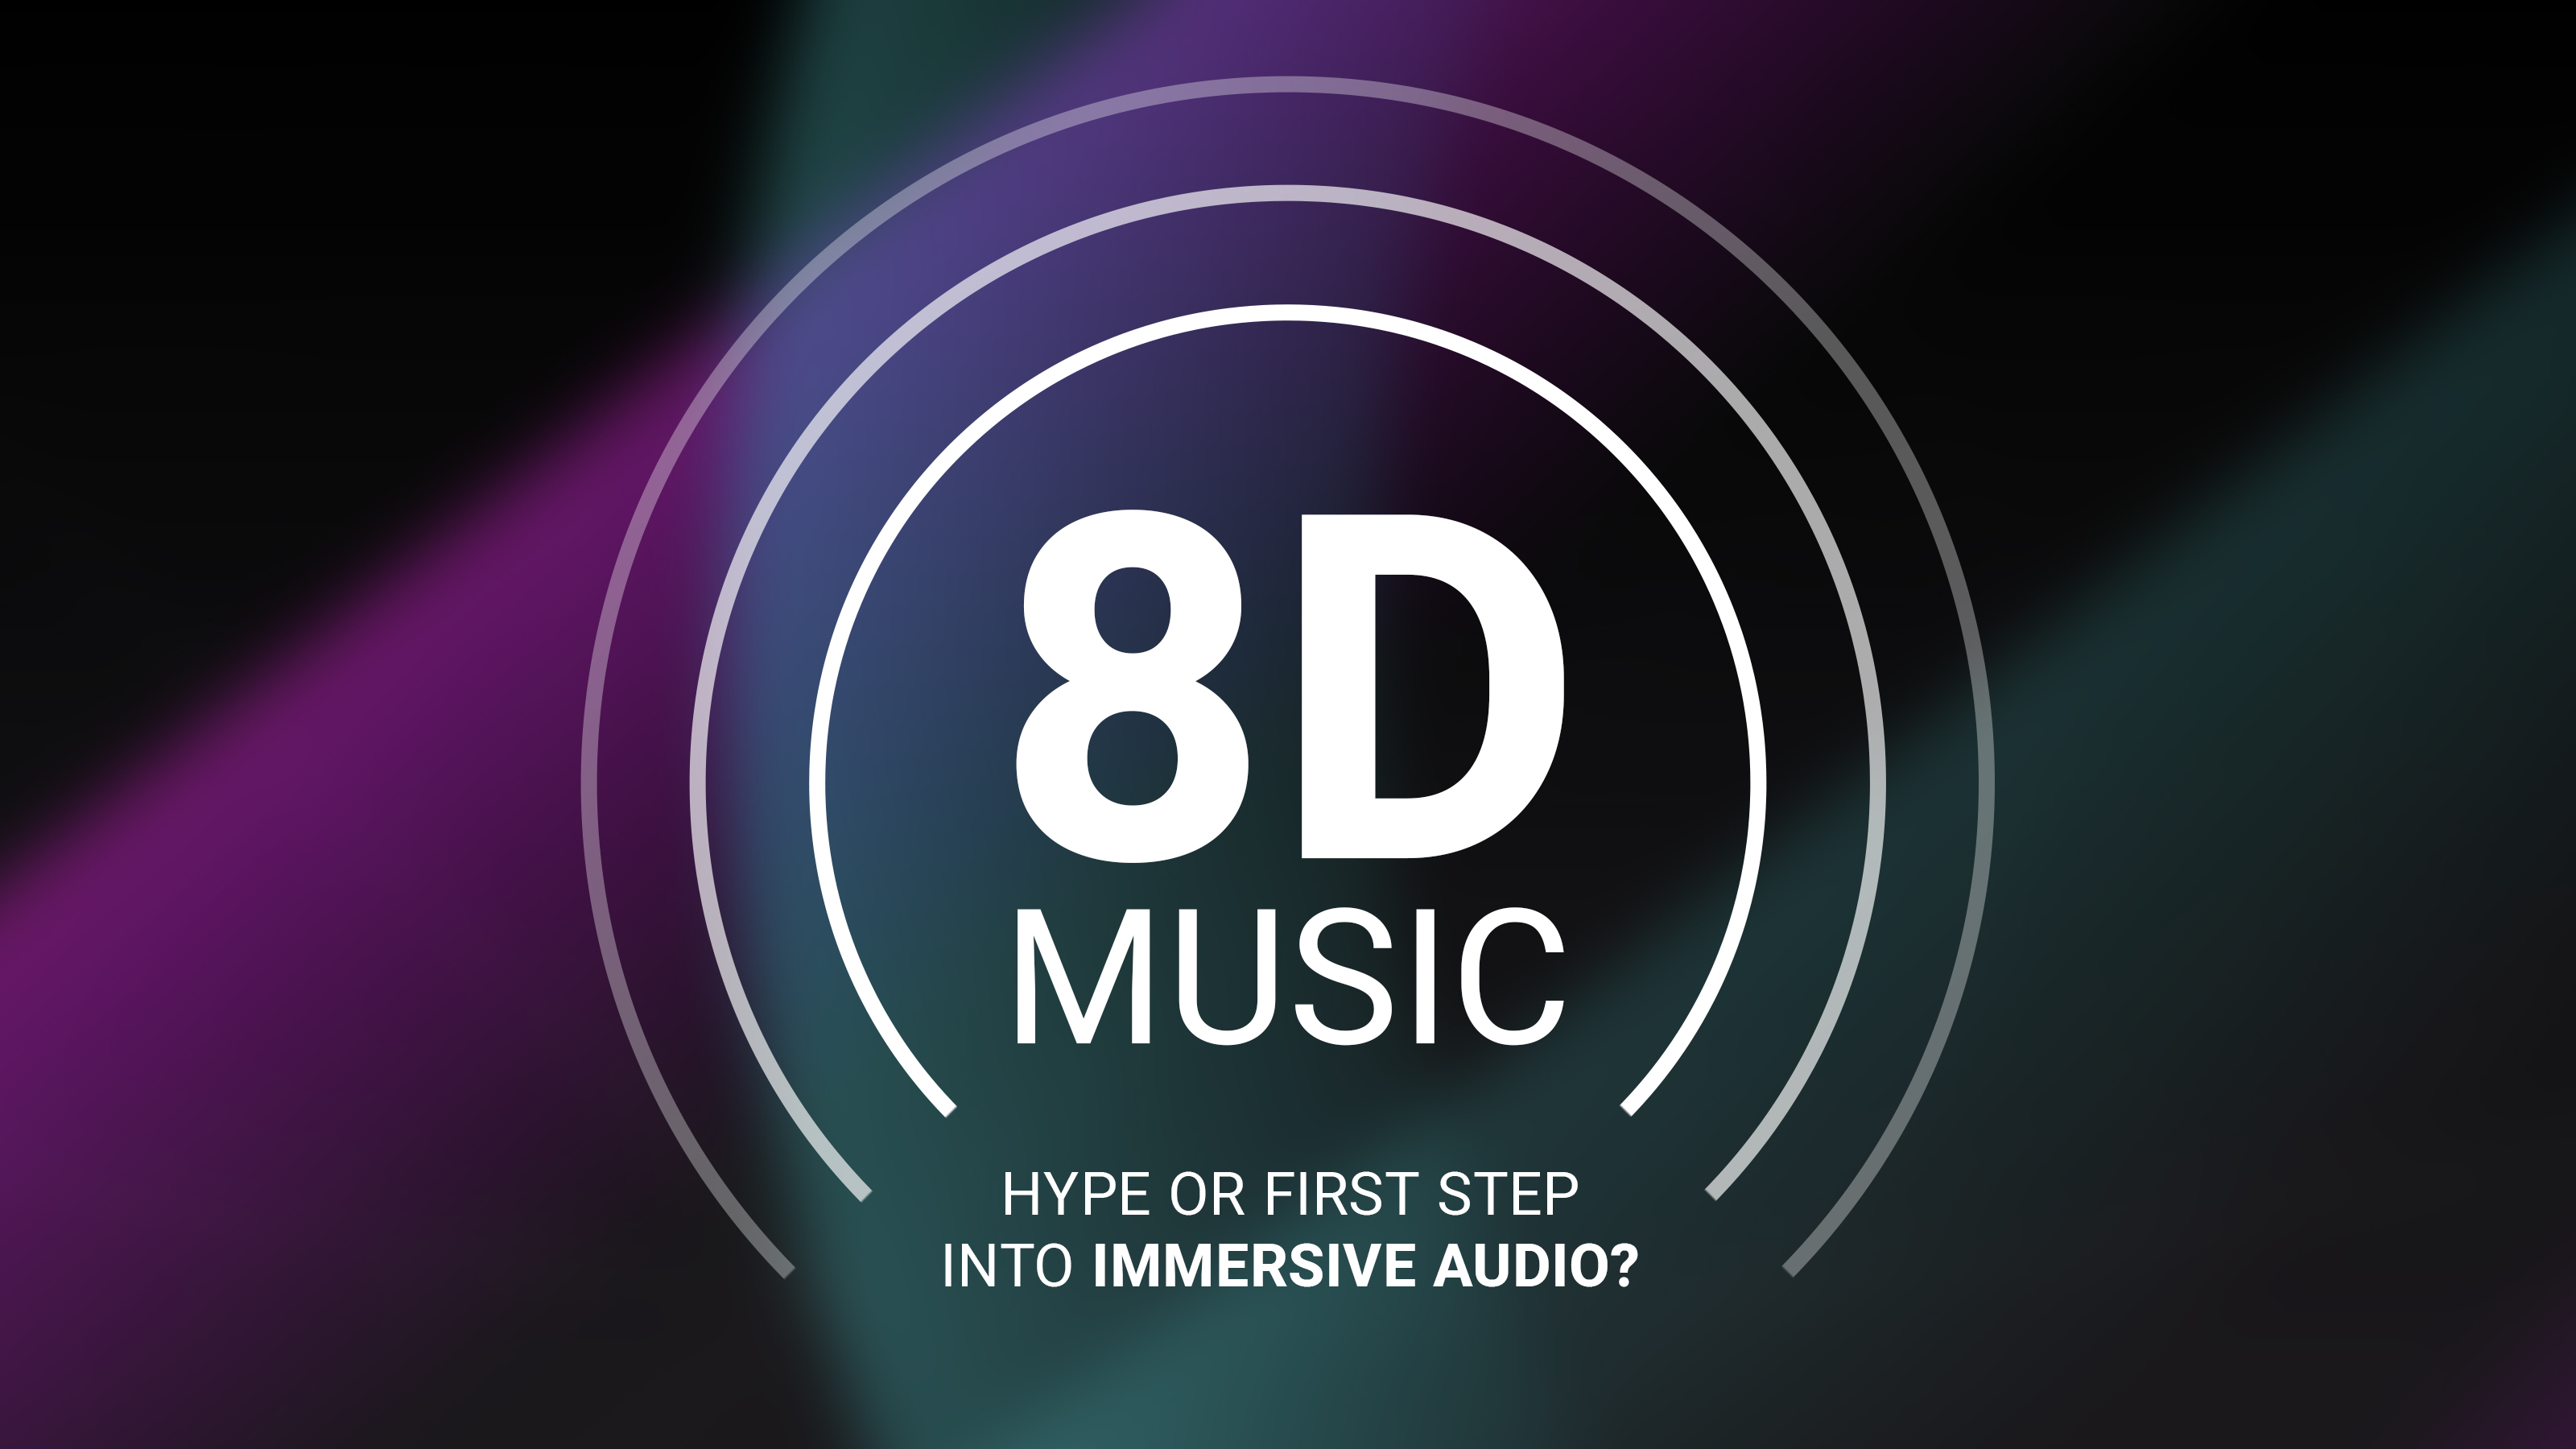 8D Music - Hype or first step into immersive audio?